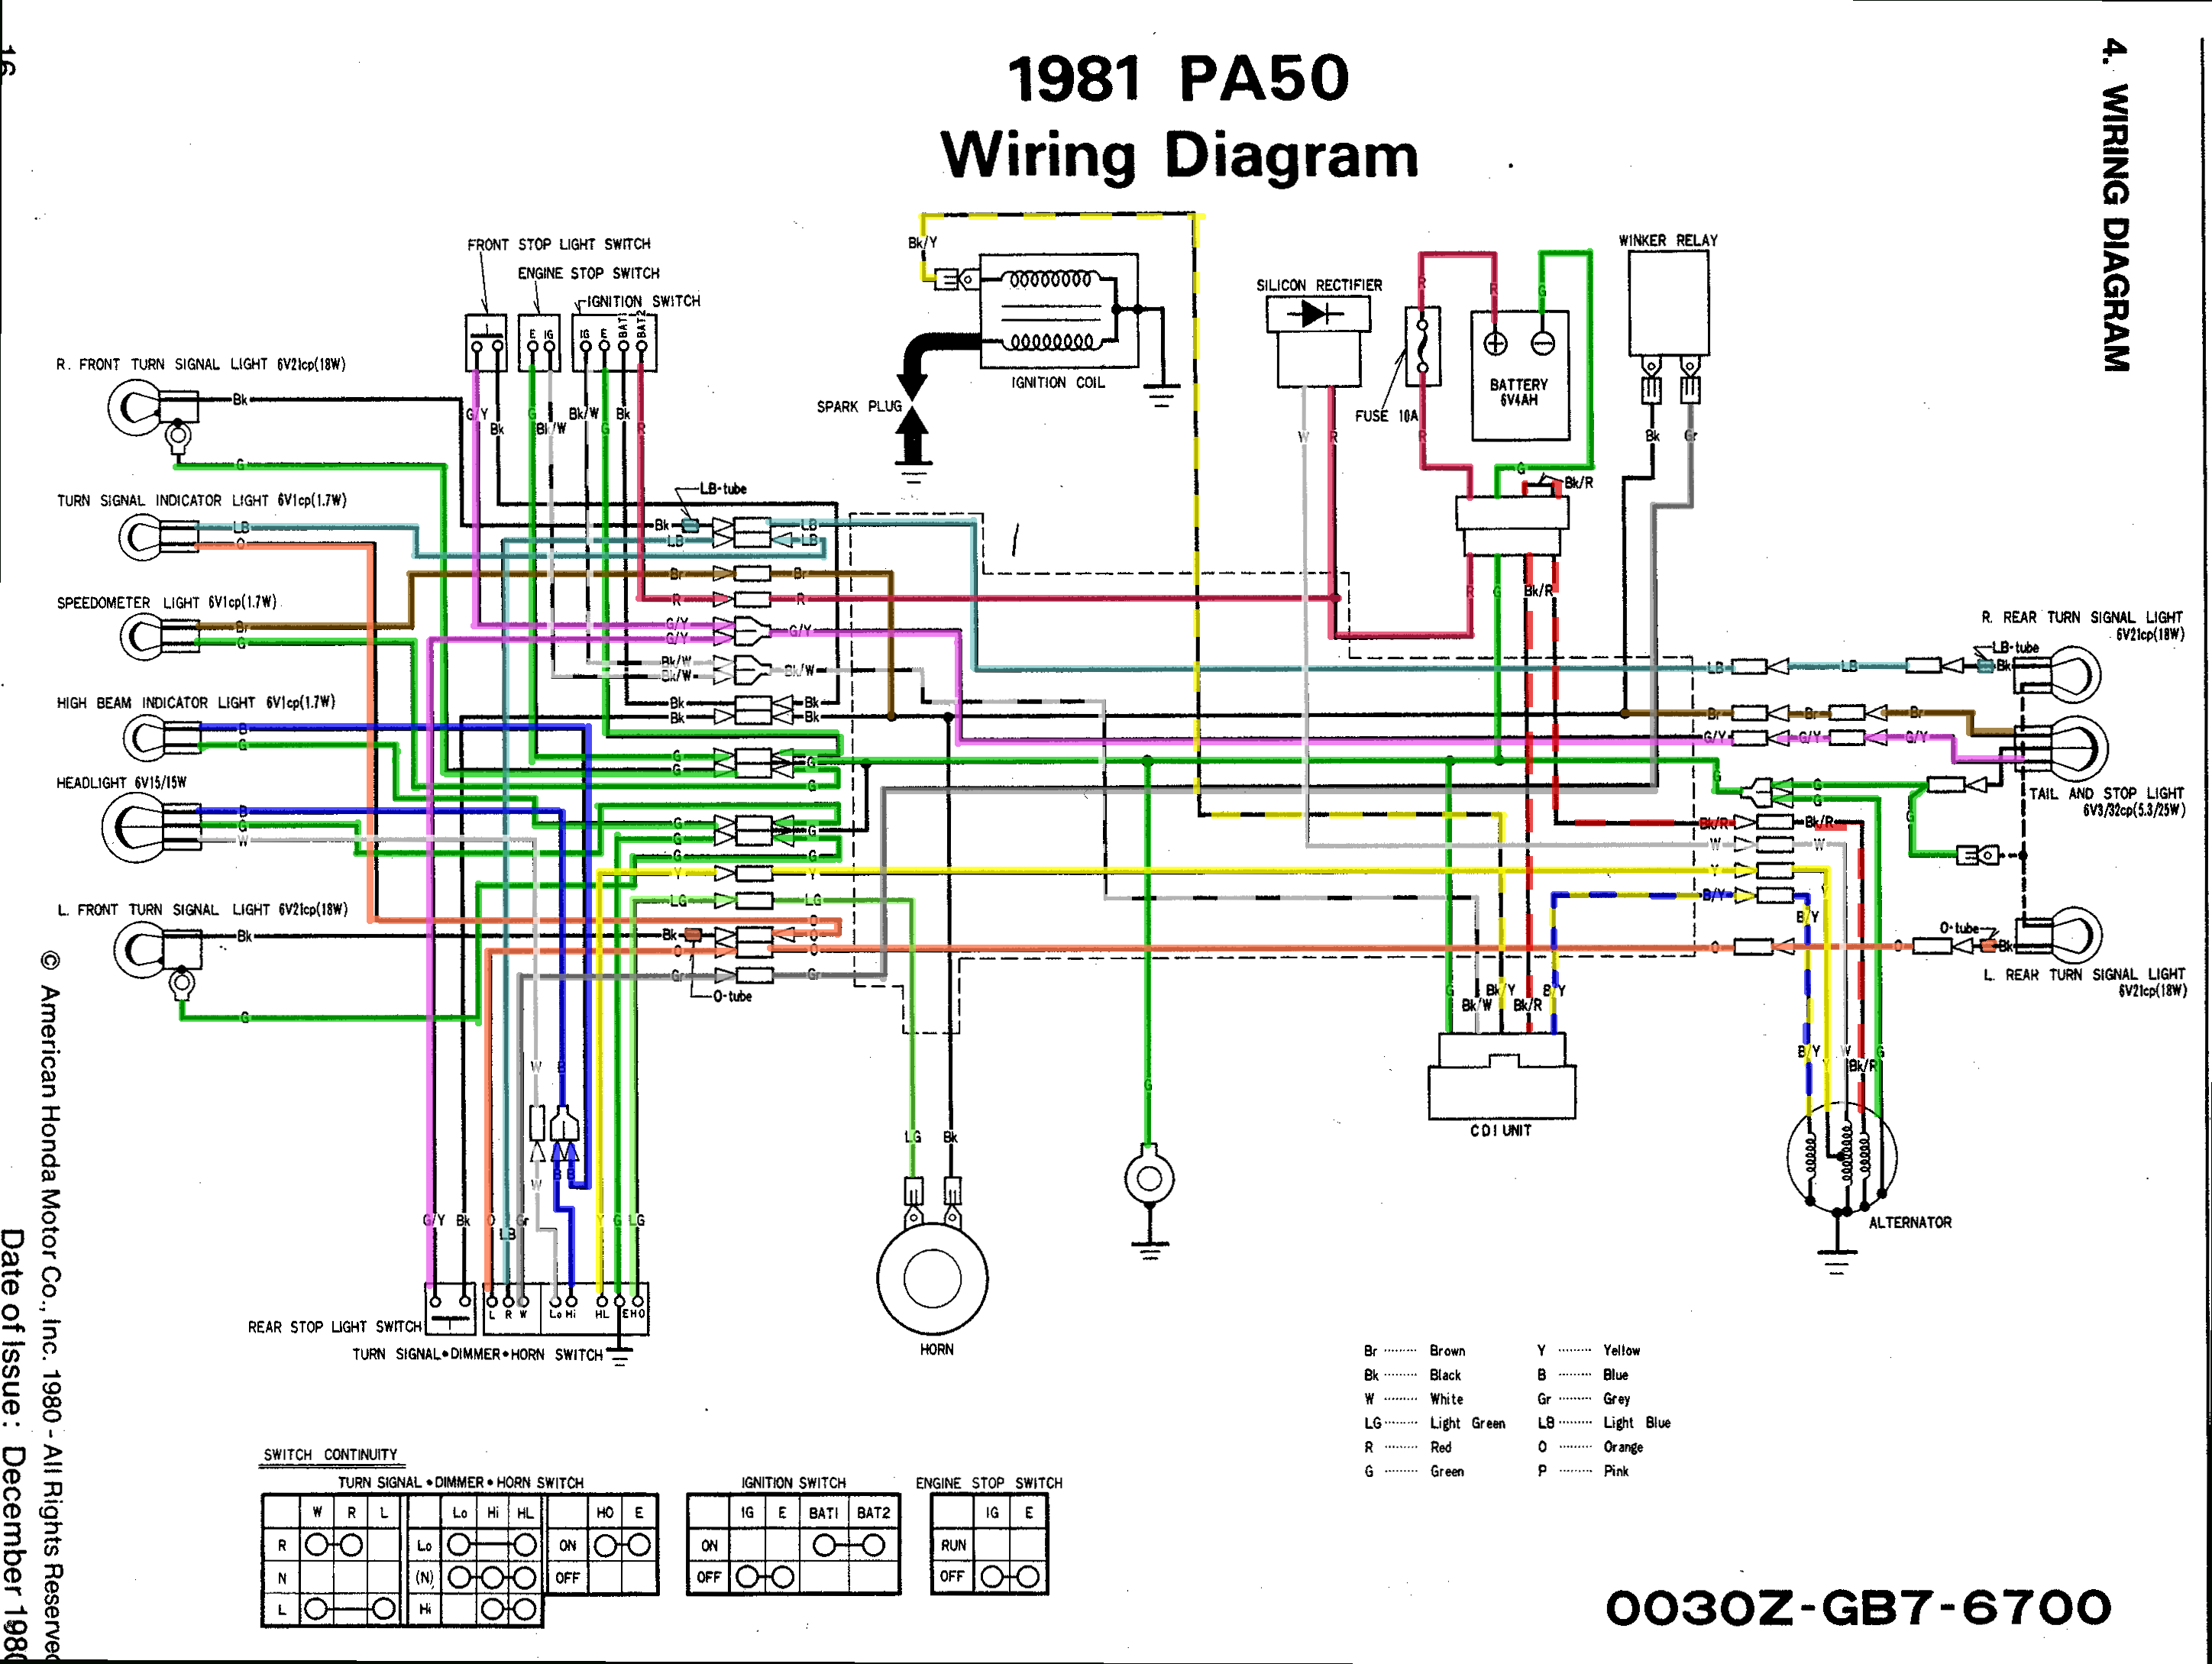 Moped Cdi Box Wire Diagram | Best Wiring Library - 6 Pin Cdi Box Wiring Diagram